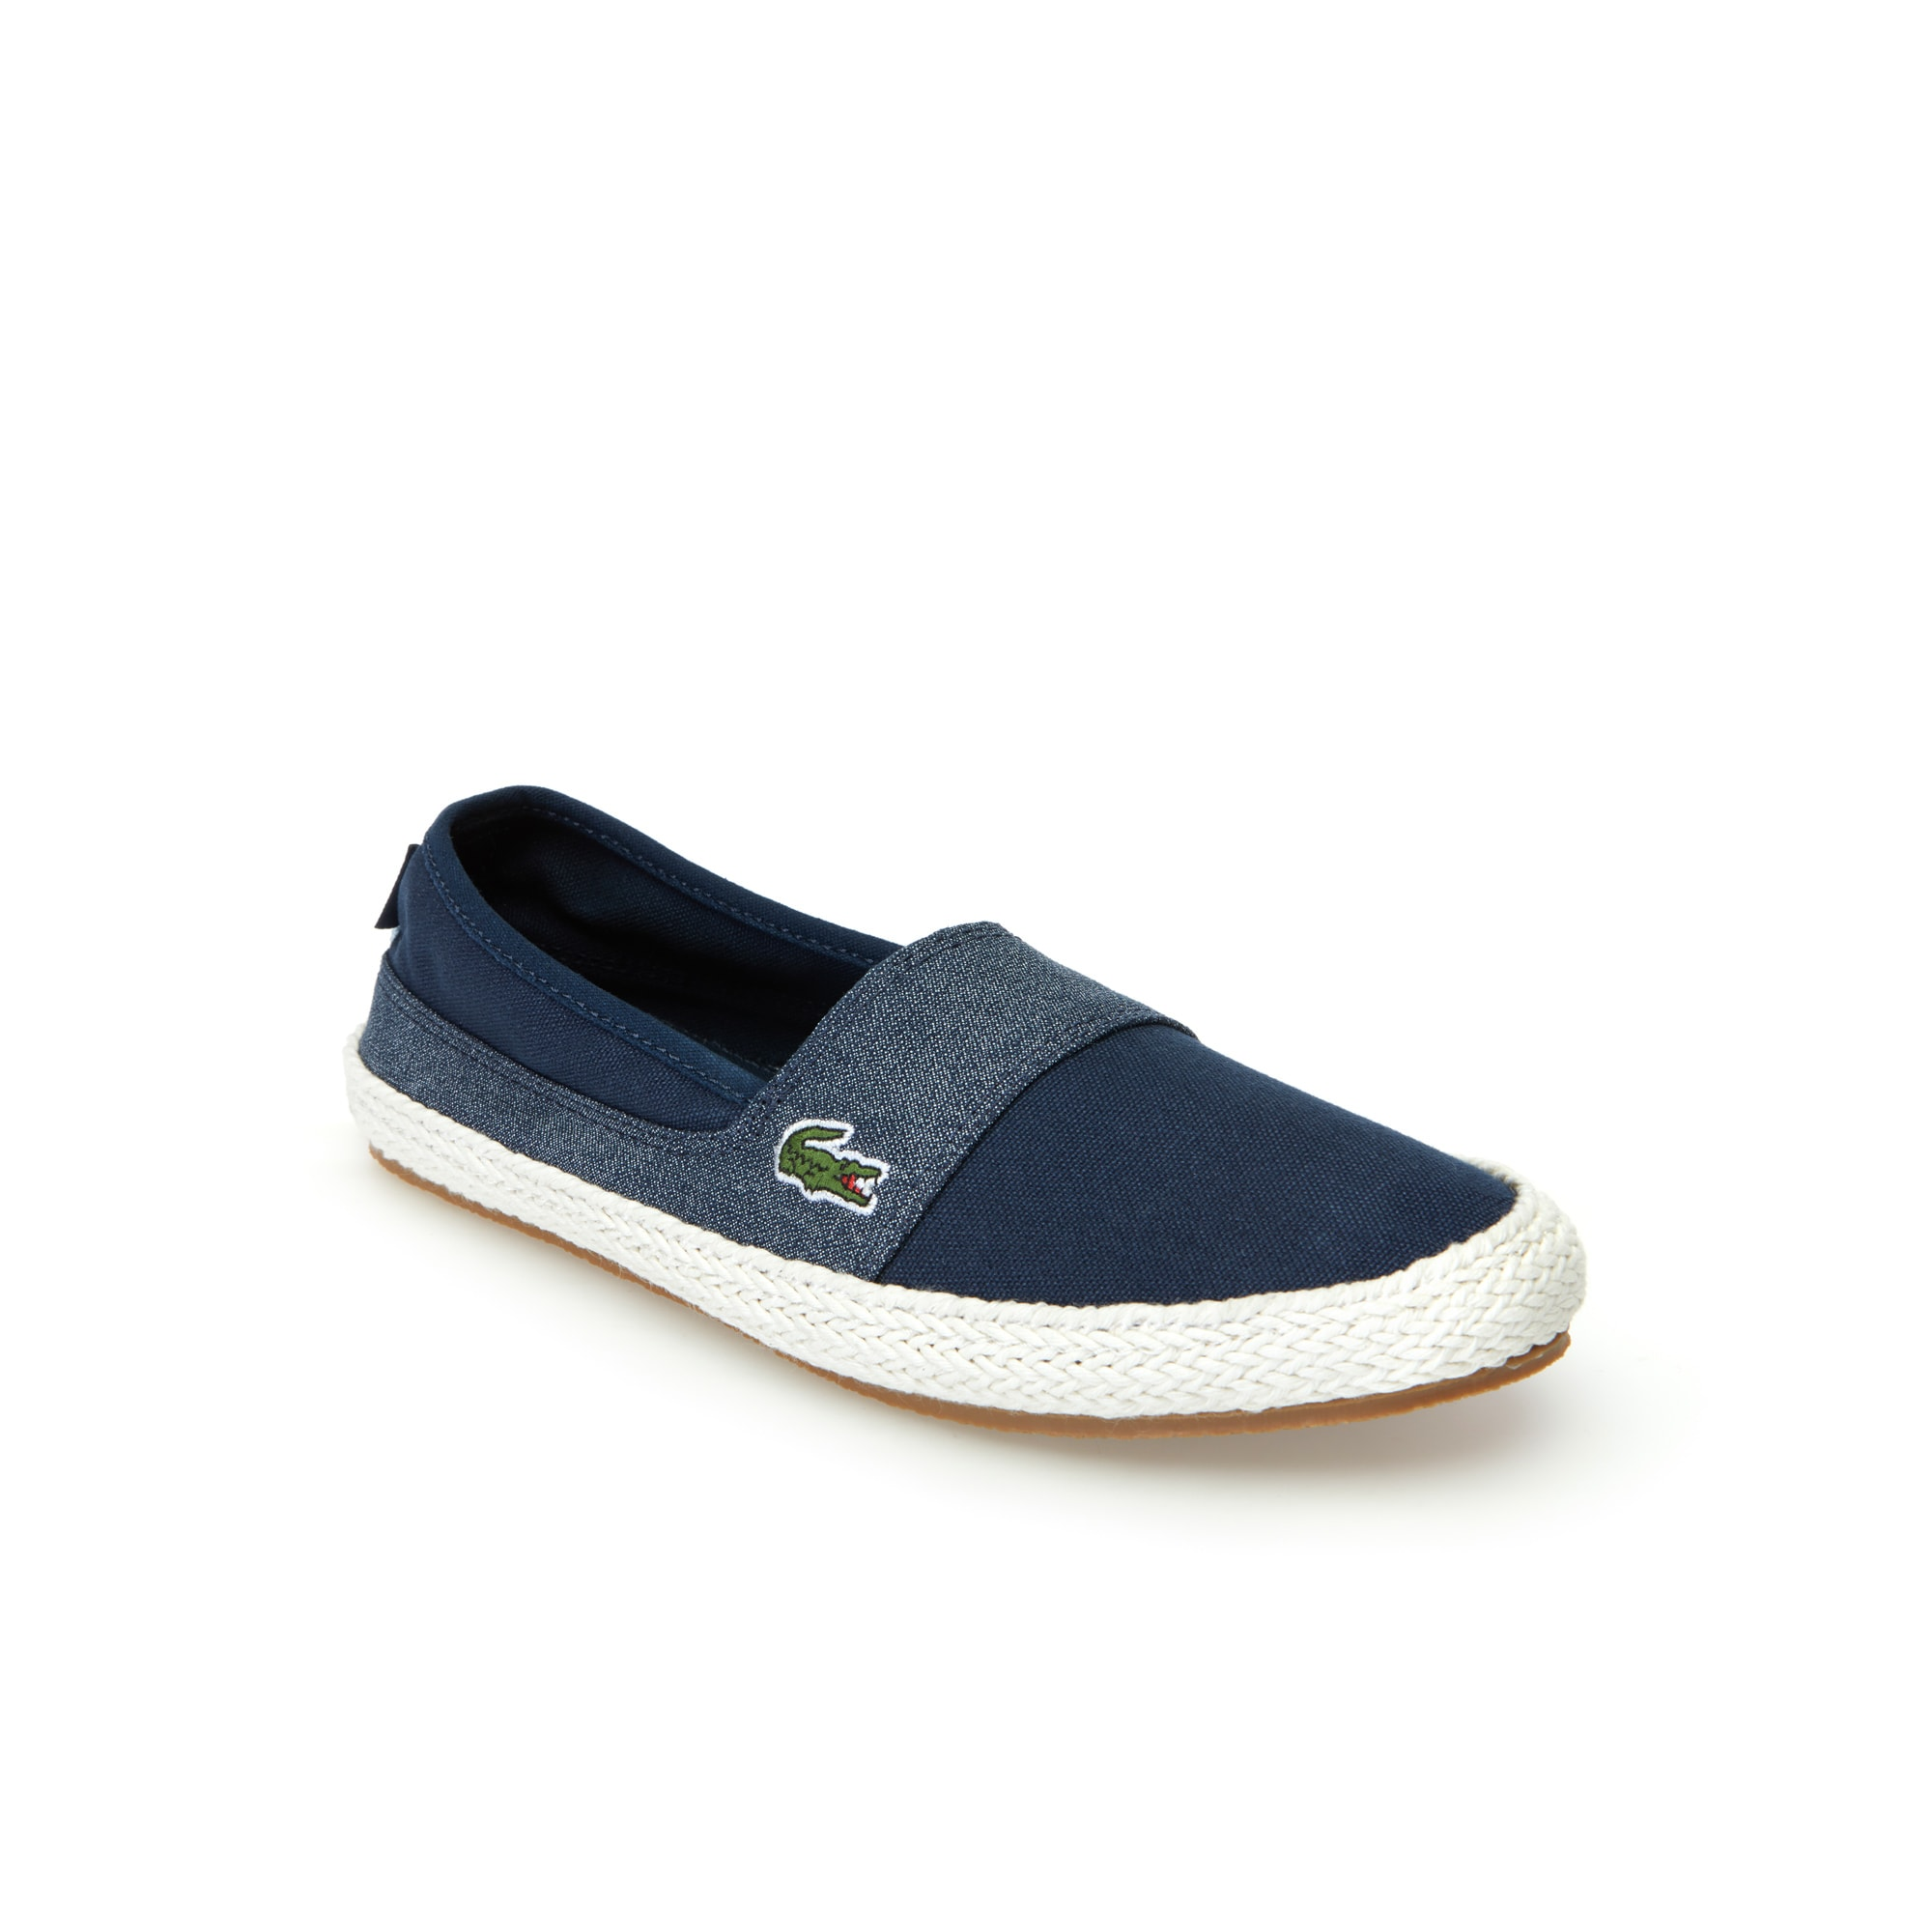 4819e3f50 Lacoste shoes - Shop online all Lacoste shoes